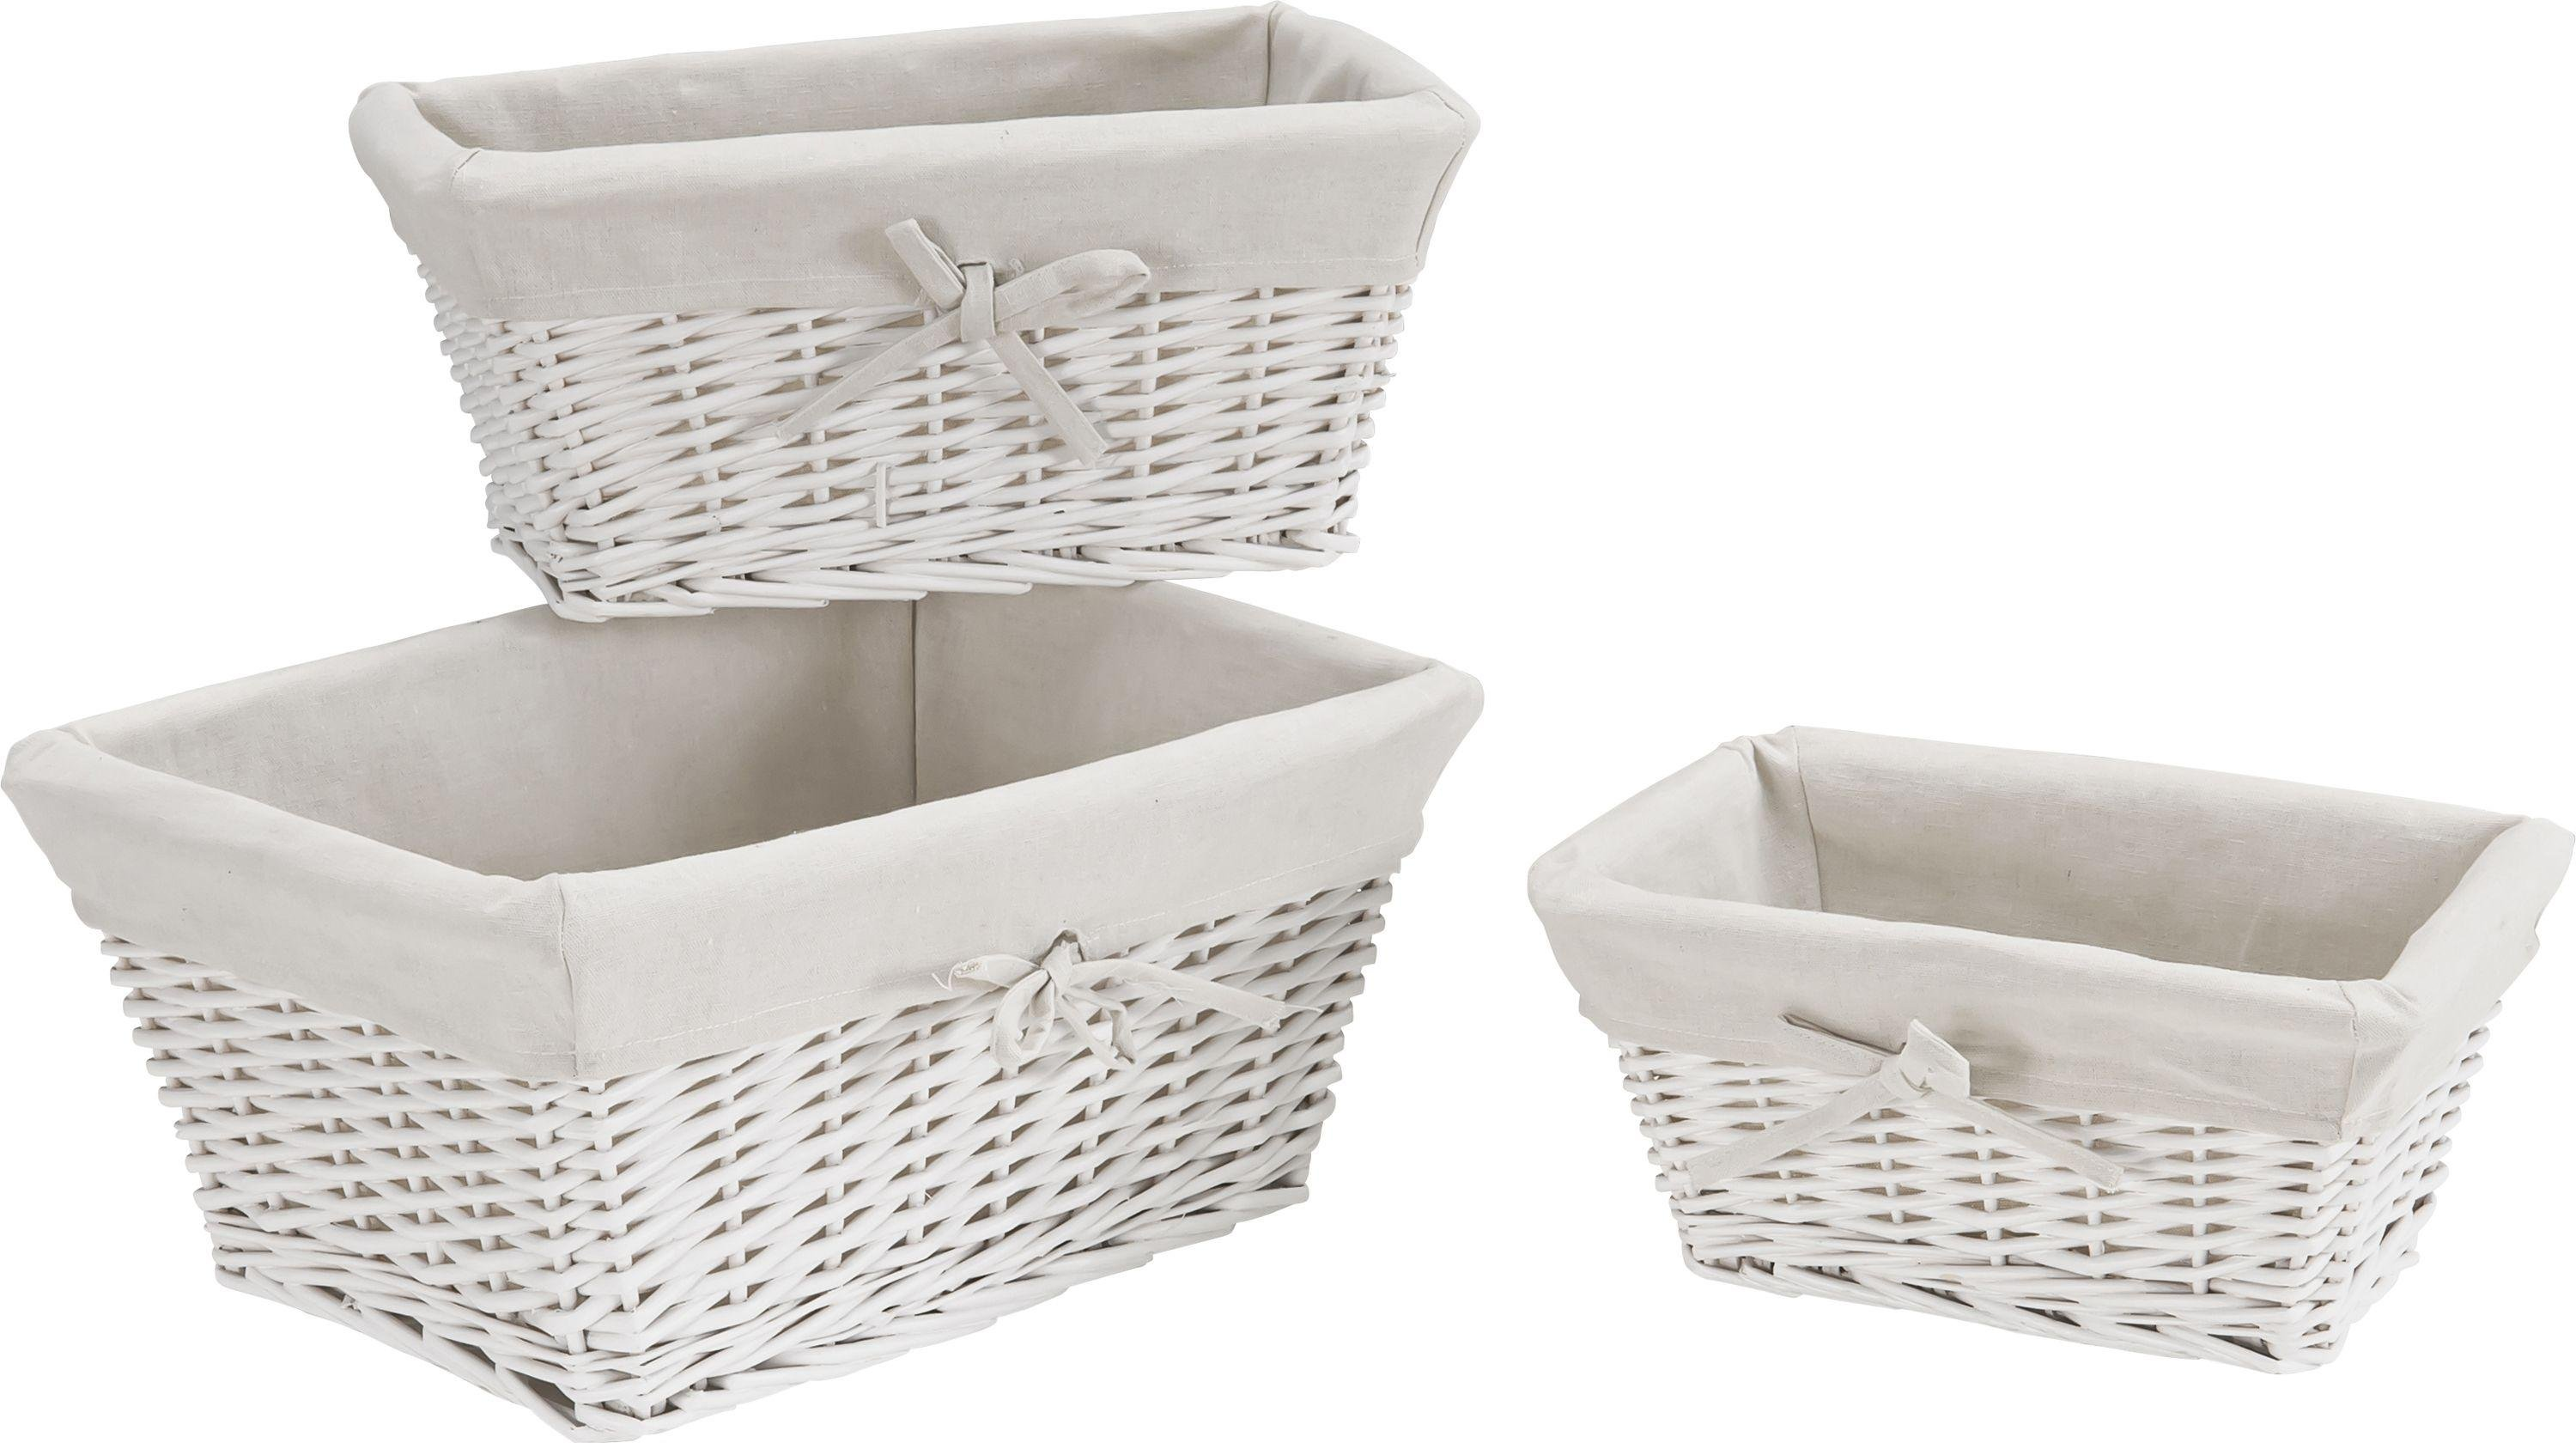 Home underbed storage baskets wicker underbed storage basket - Heart Of House Willow Set Of 3 Storage Baskets White